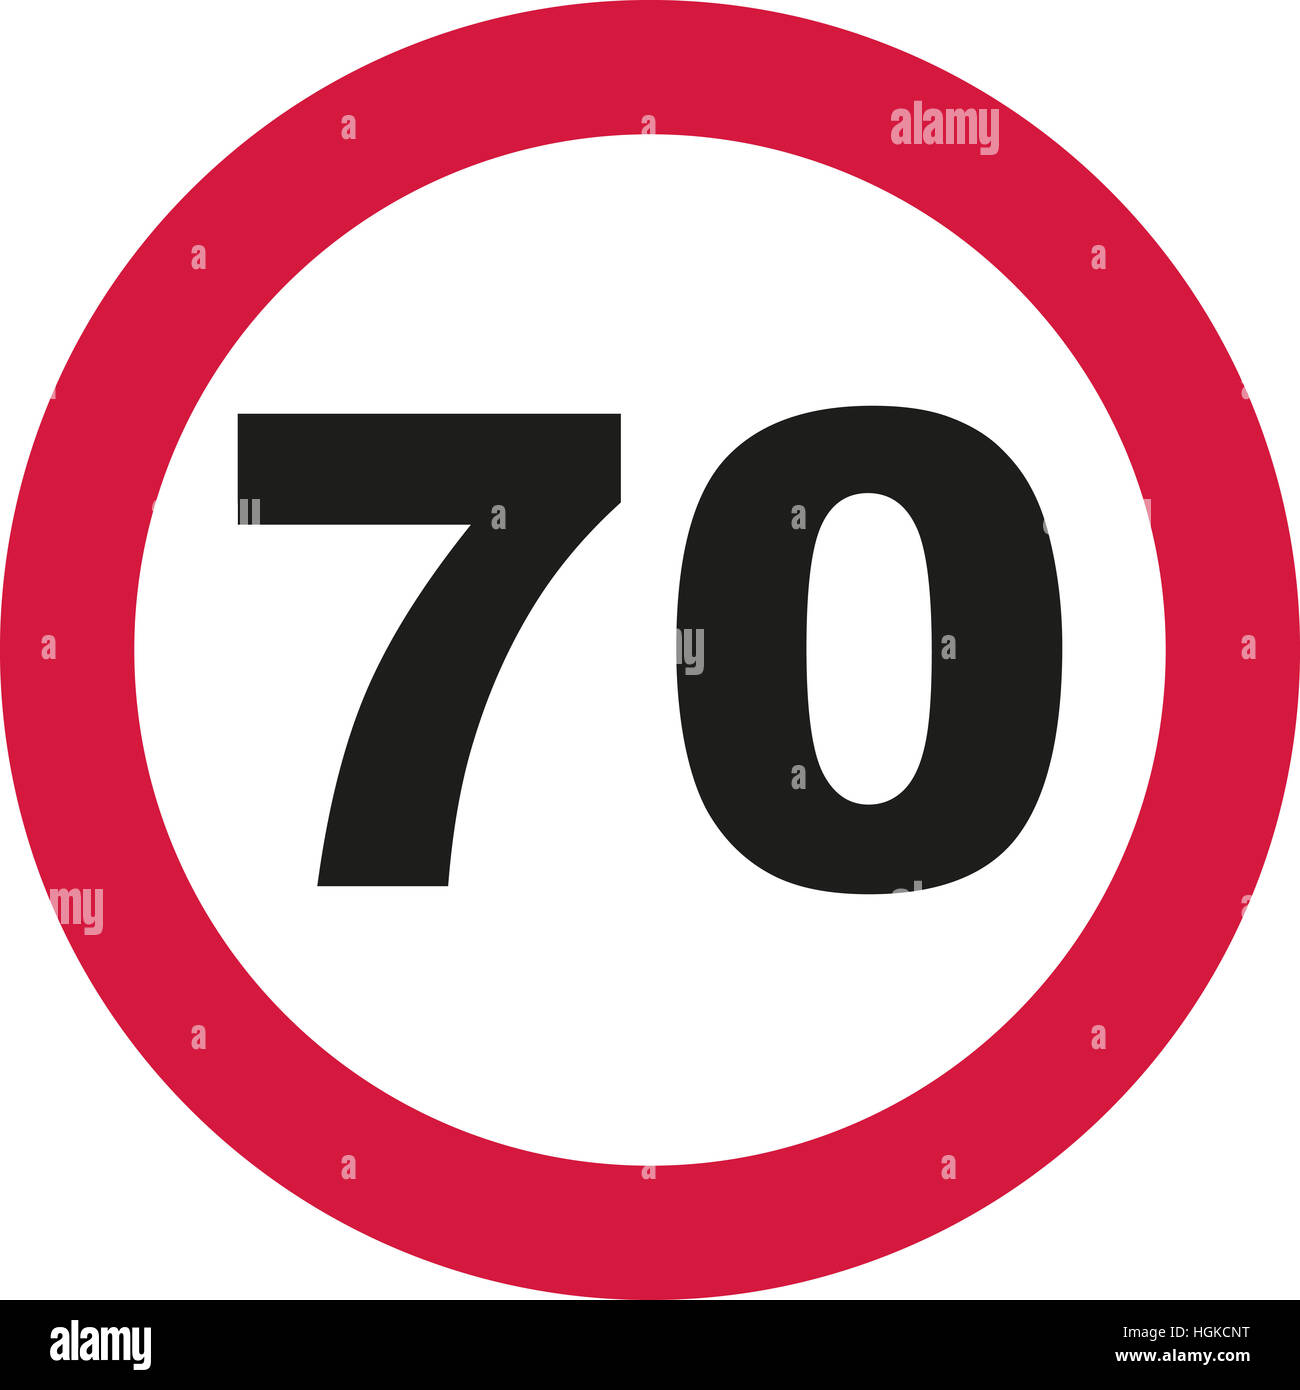 70th birthday traffic sign stock photo royalty free image 70th birthday traffic sign biocorpaavc